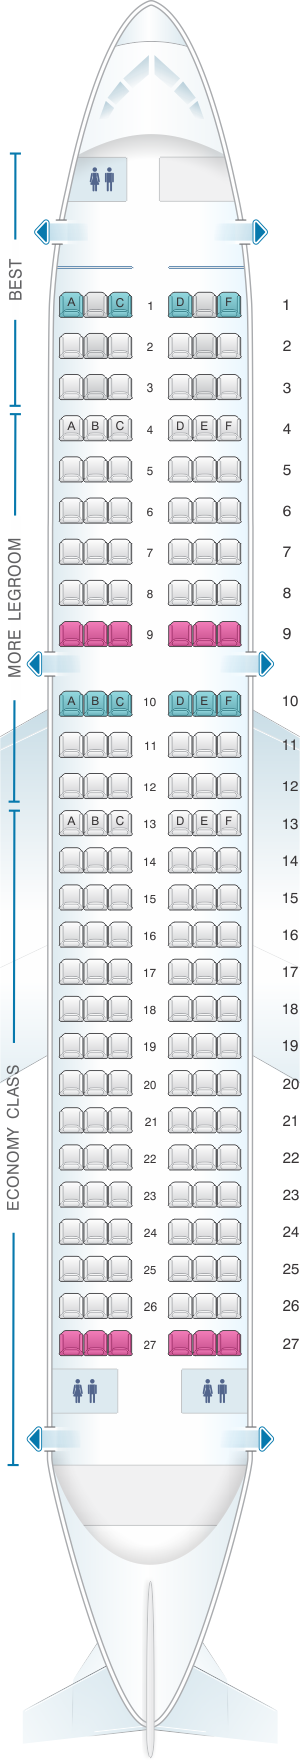 Seat map for Eurowings Airbus A320